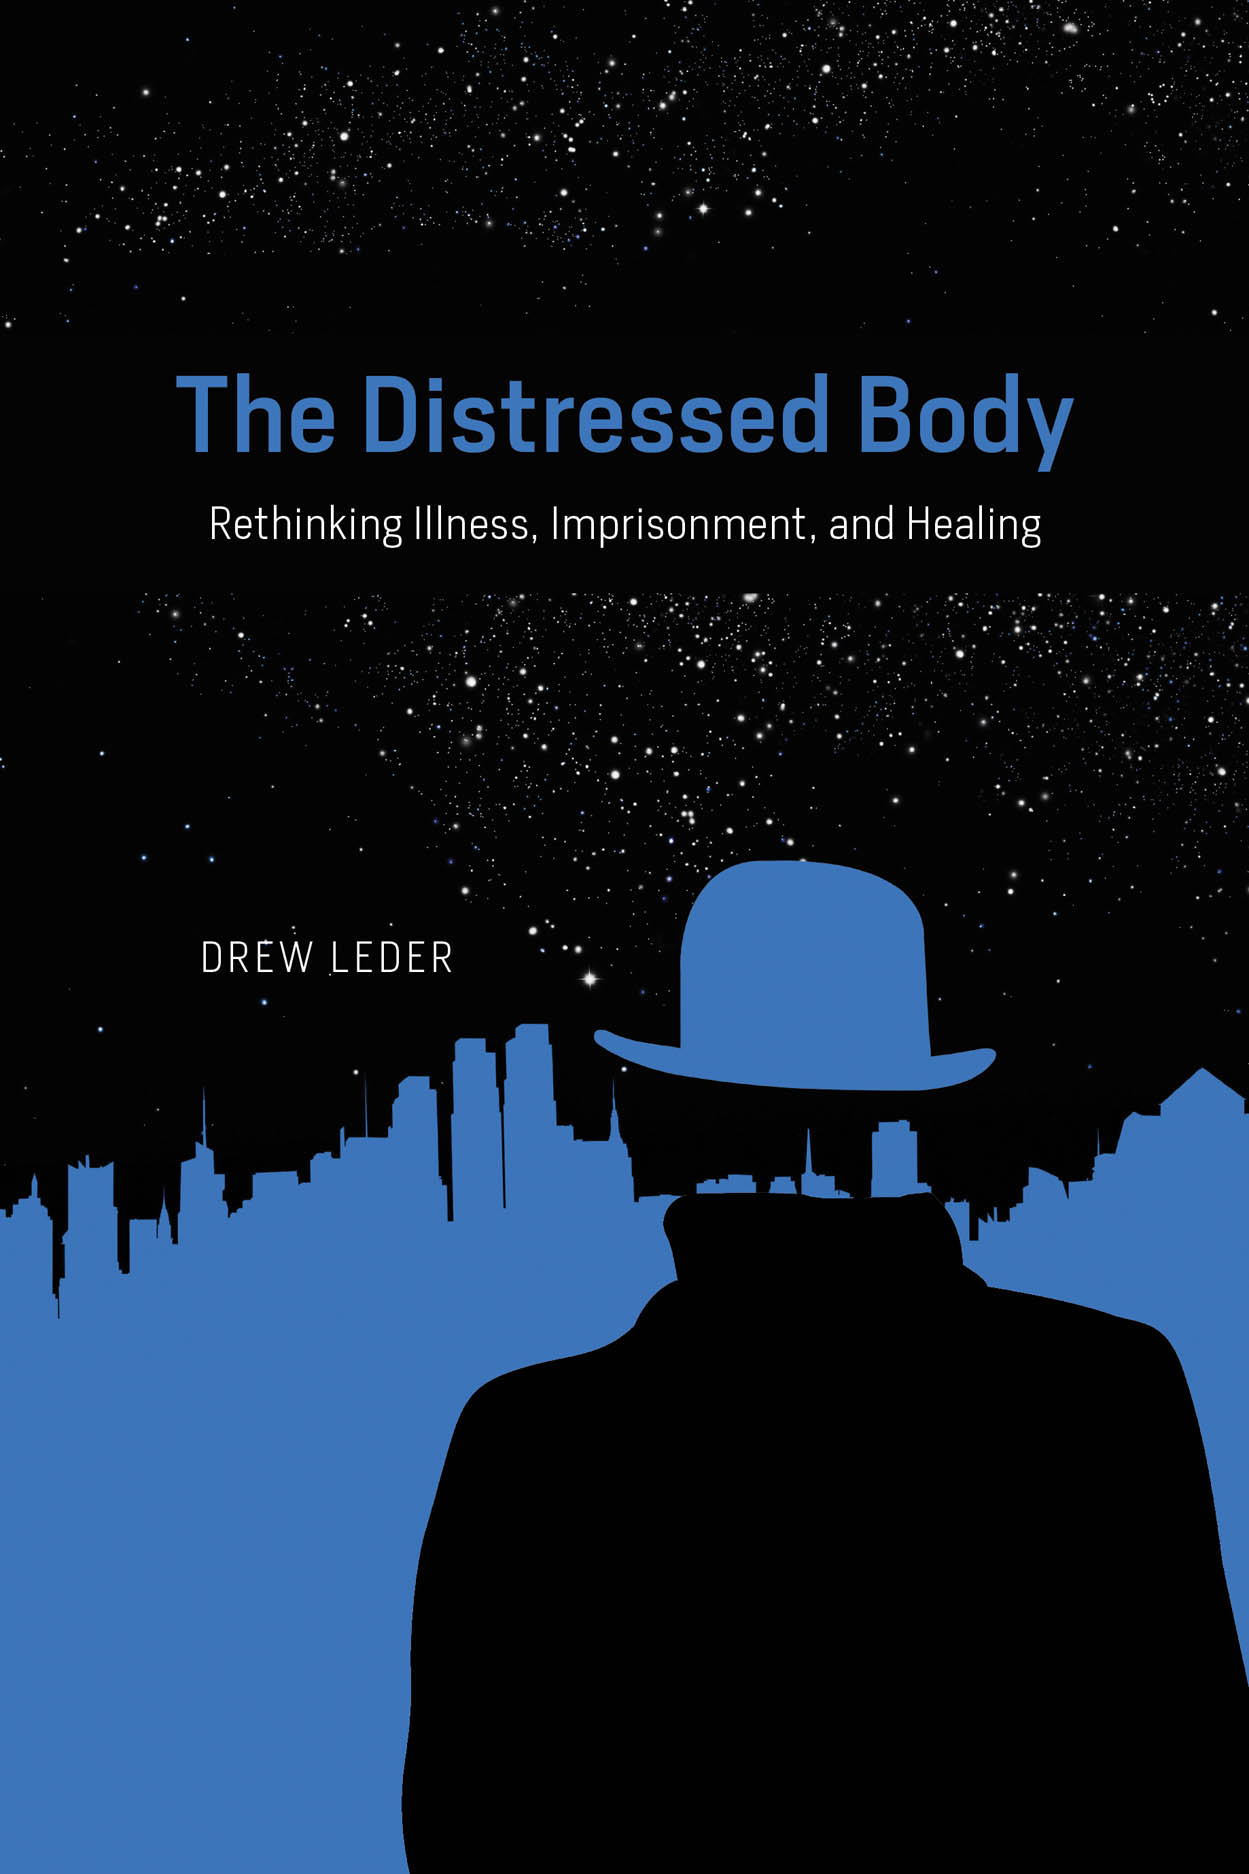 The Distressed Body: Rethinking Illness, Imprisonment, and Healing